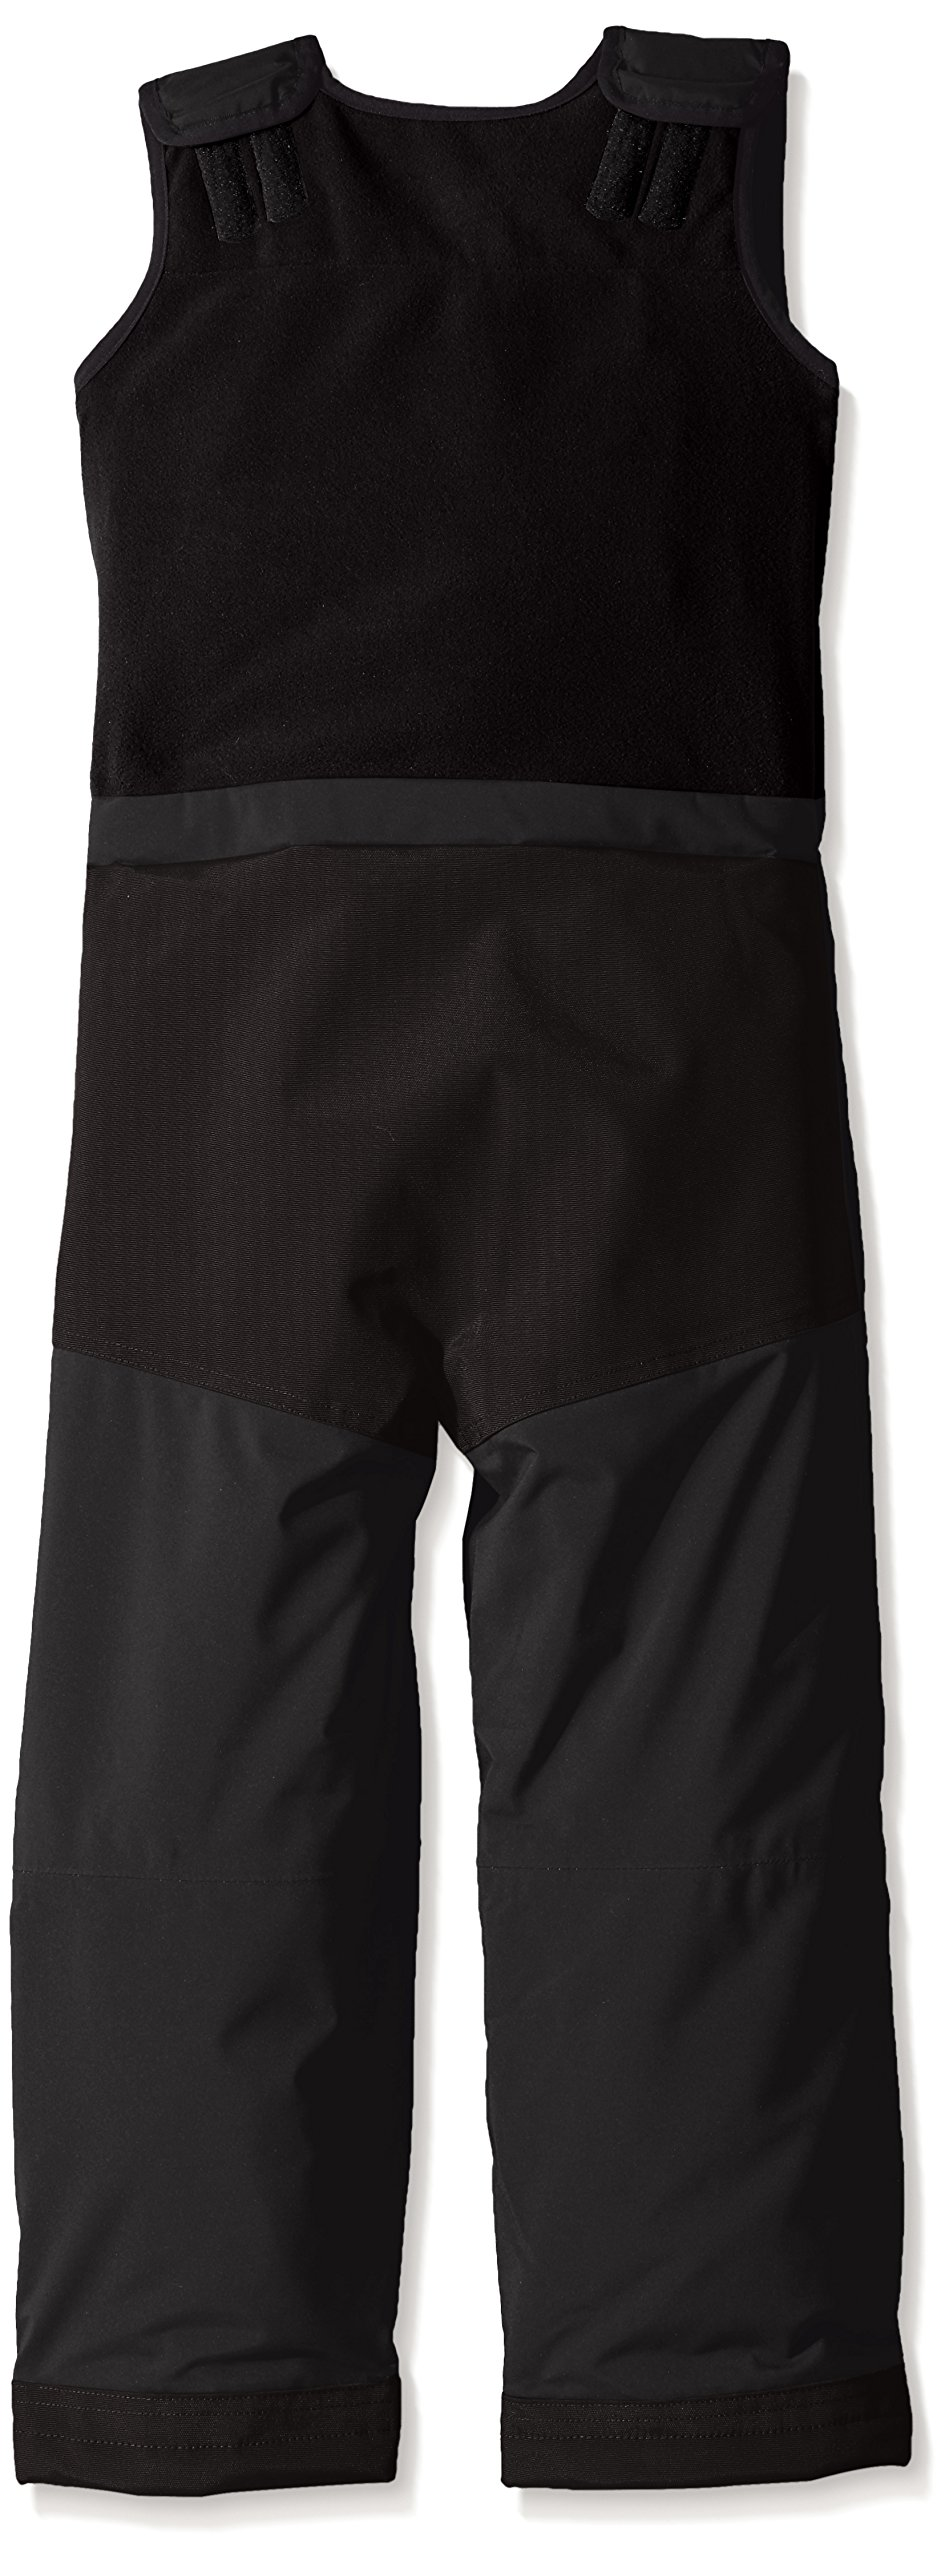 Helly Hansen Kids Powder Bib Pants, Ebony, Size 8 by Helly Hansen (Image #2)